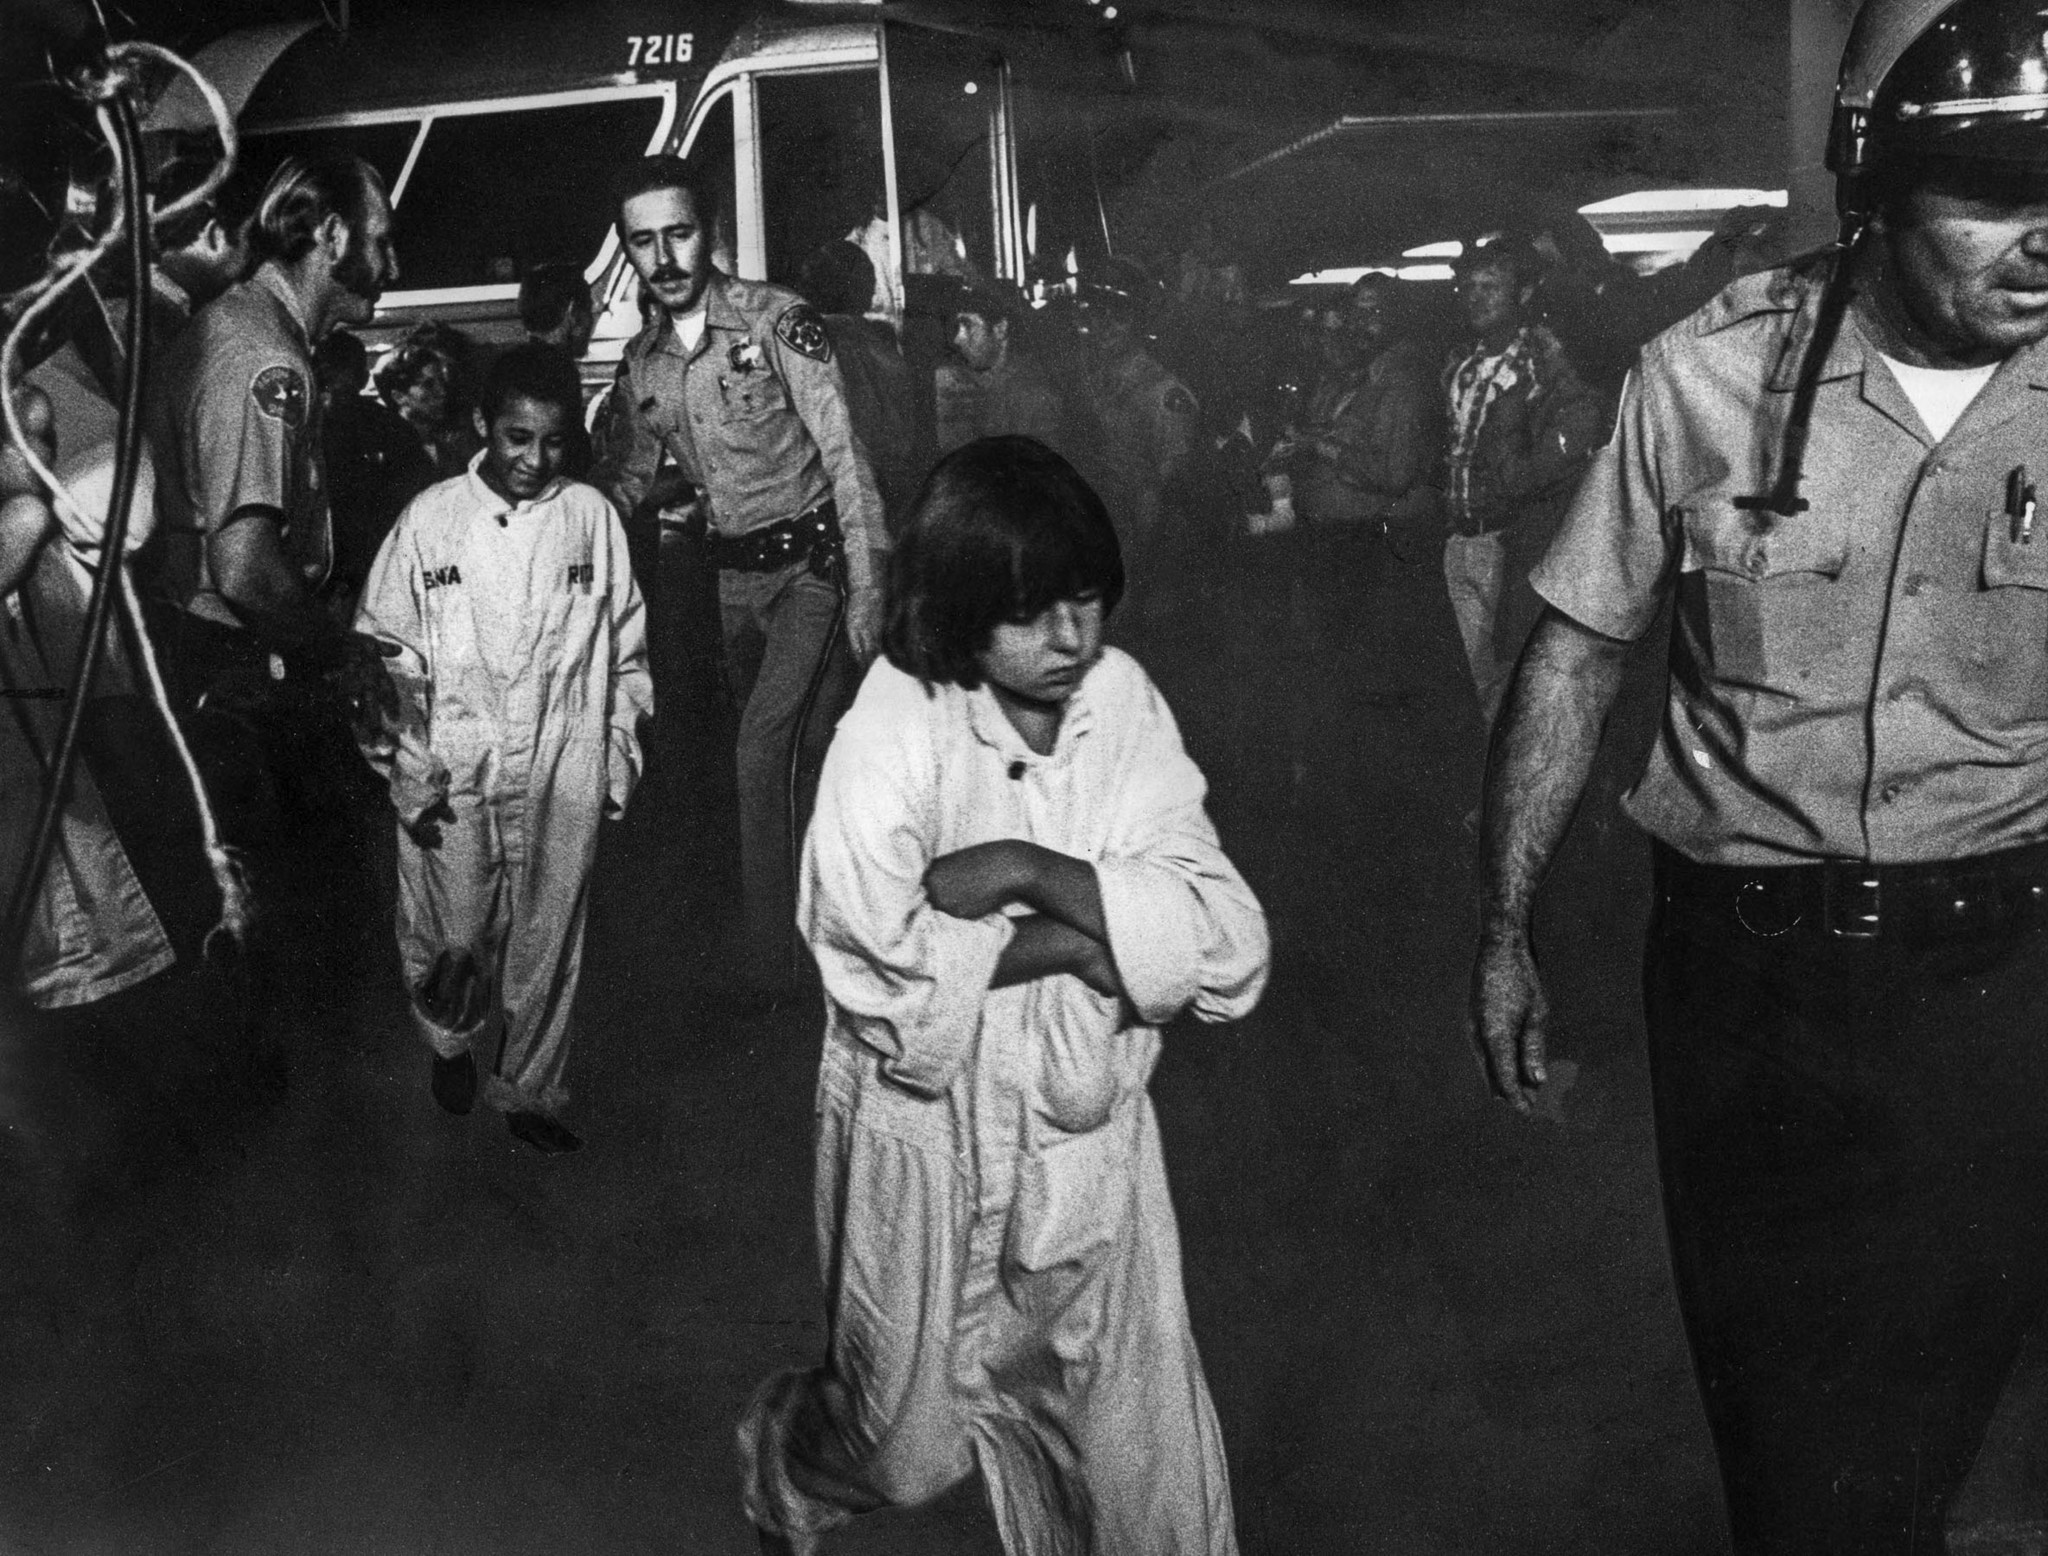 July 17, 1976: Officers escort chidren from Grayhound bus upon their return to Chowchilla at 4 a.m.